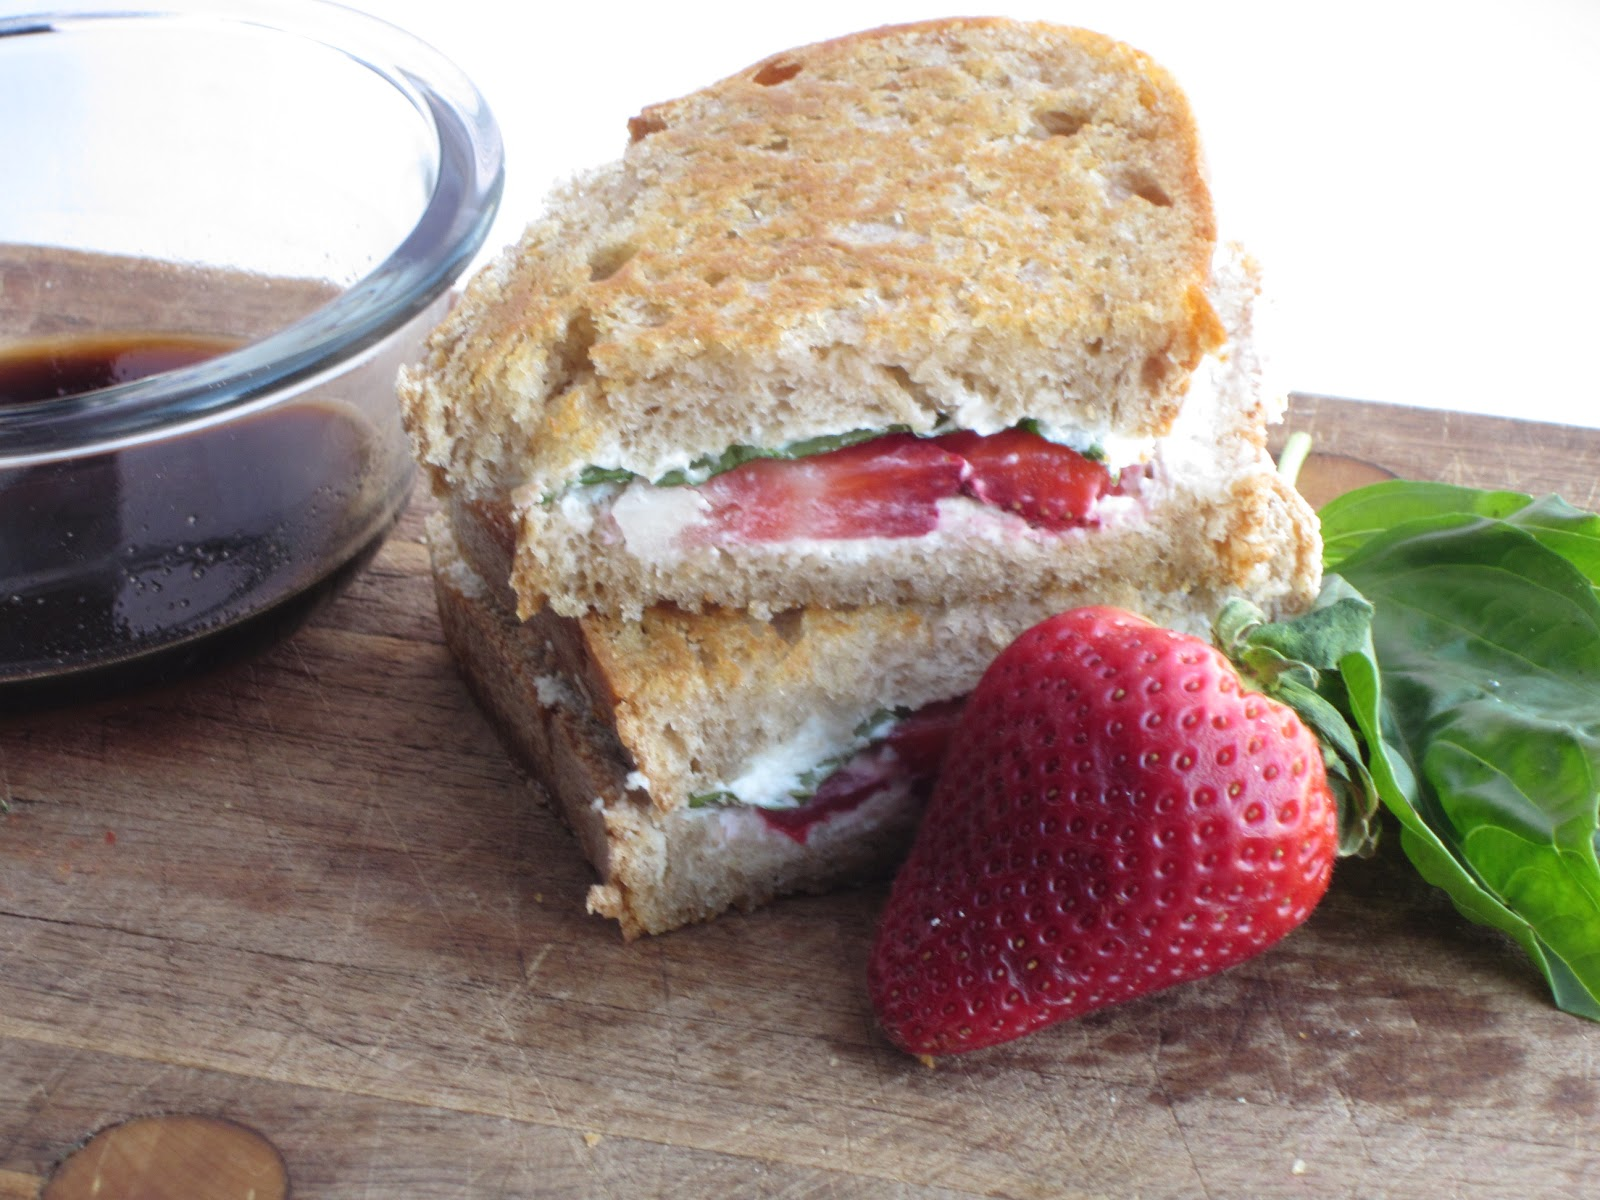 Sweet Luvin' In The Kitchen: Strawberry-Basil and Goat Cheese Panini